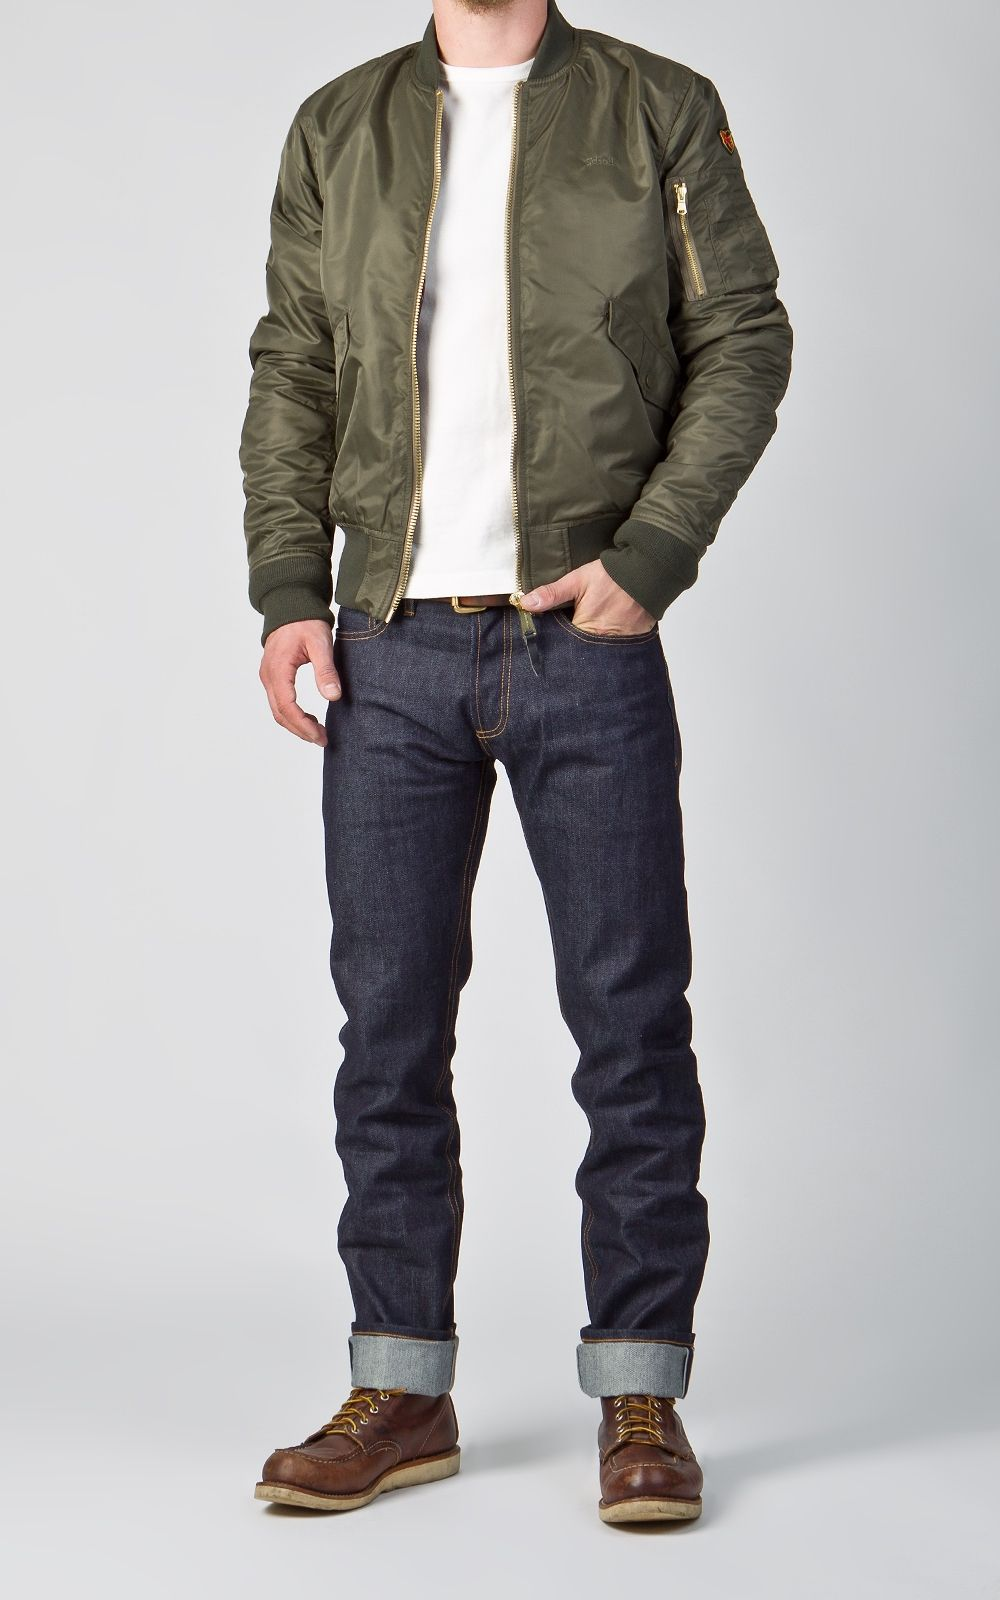 9d1760a88 Schott N.Y.C. Bomber Jacket AC Army | Apparel | Bomber jacket outfit ...